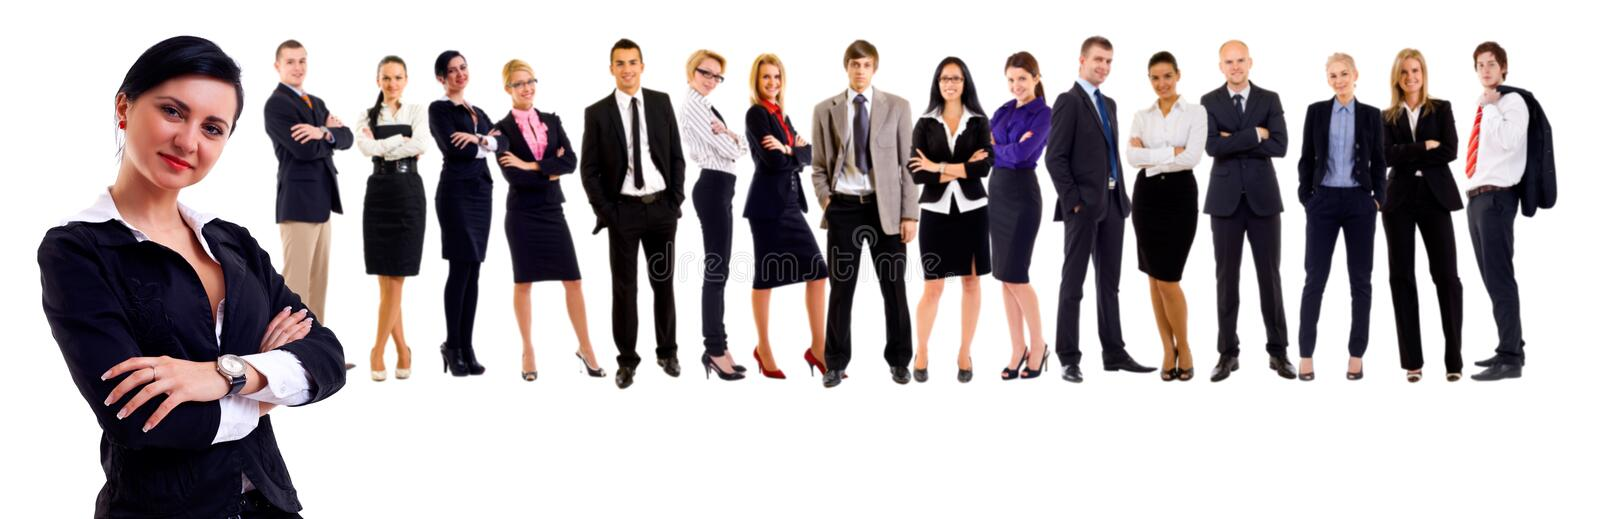 Attractive business people. Young attractive business people - the elite business team - lead by a business woman royalty free stock photos